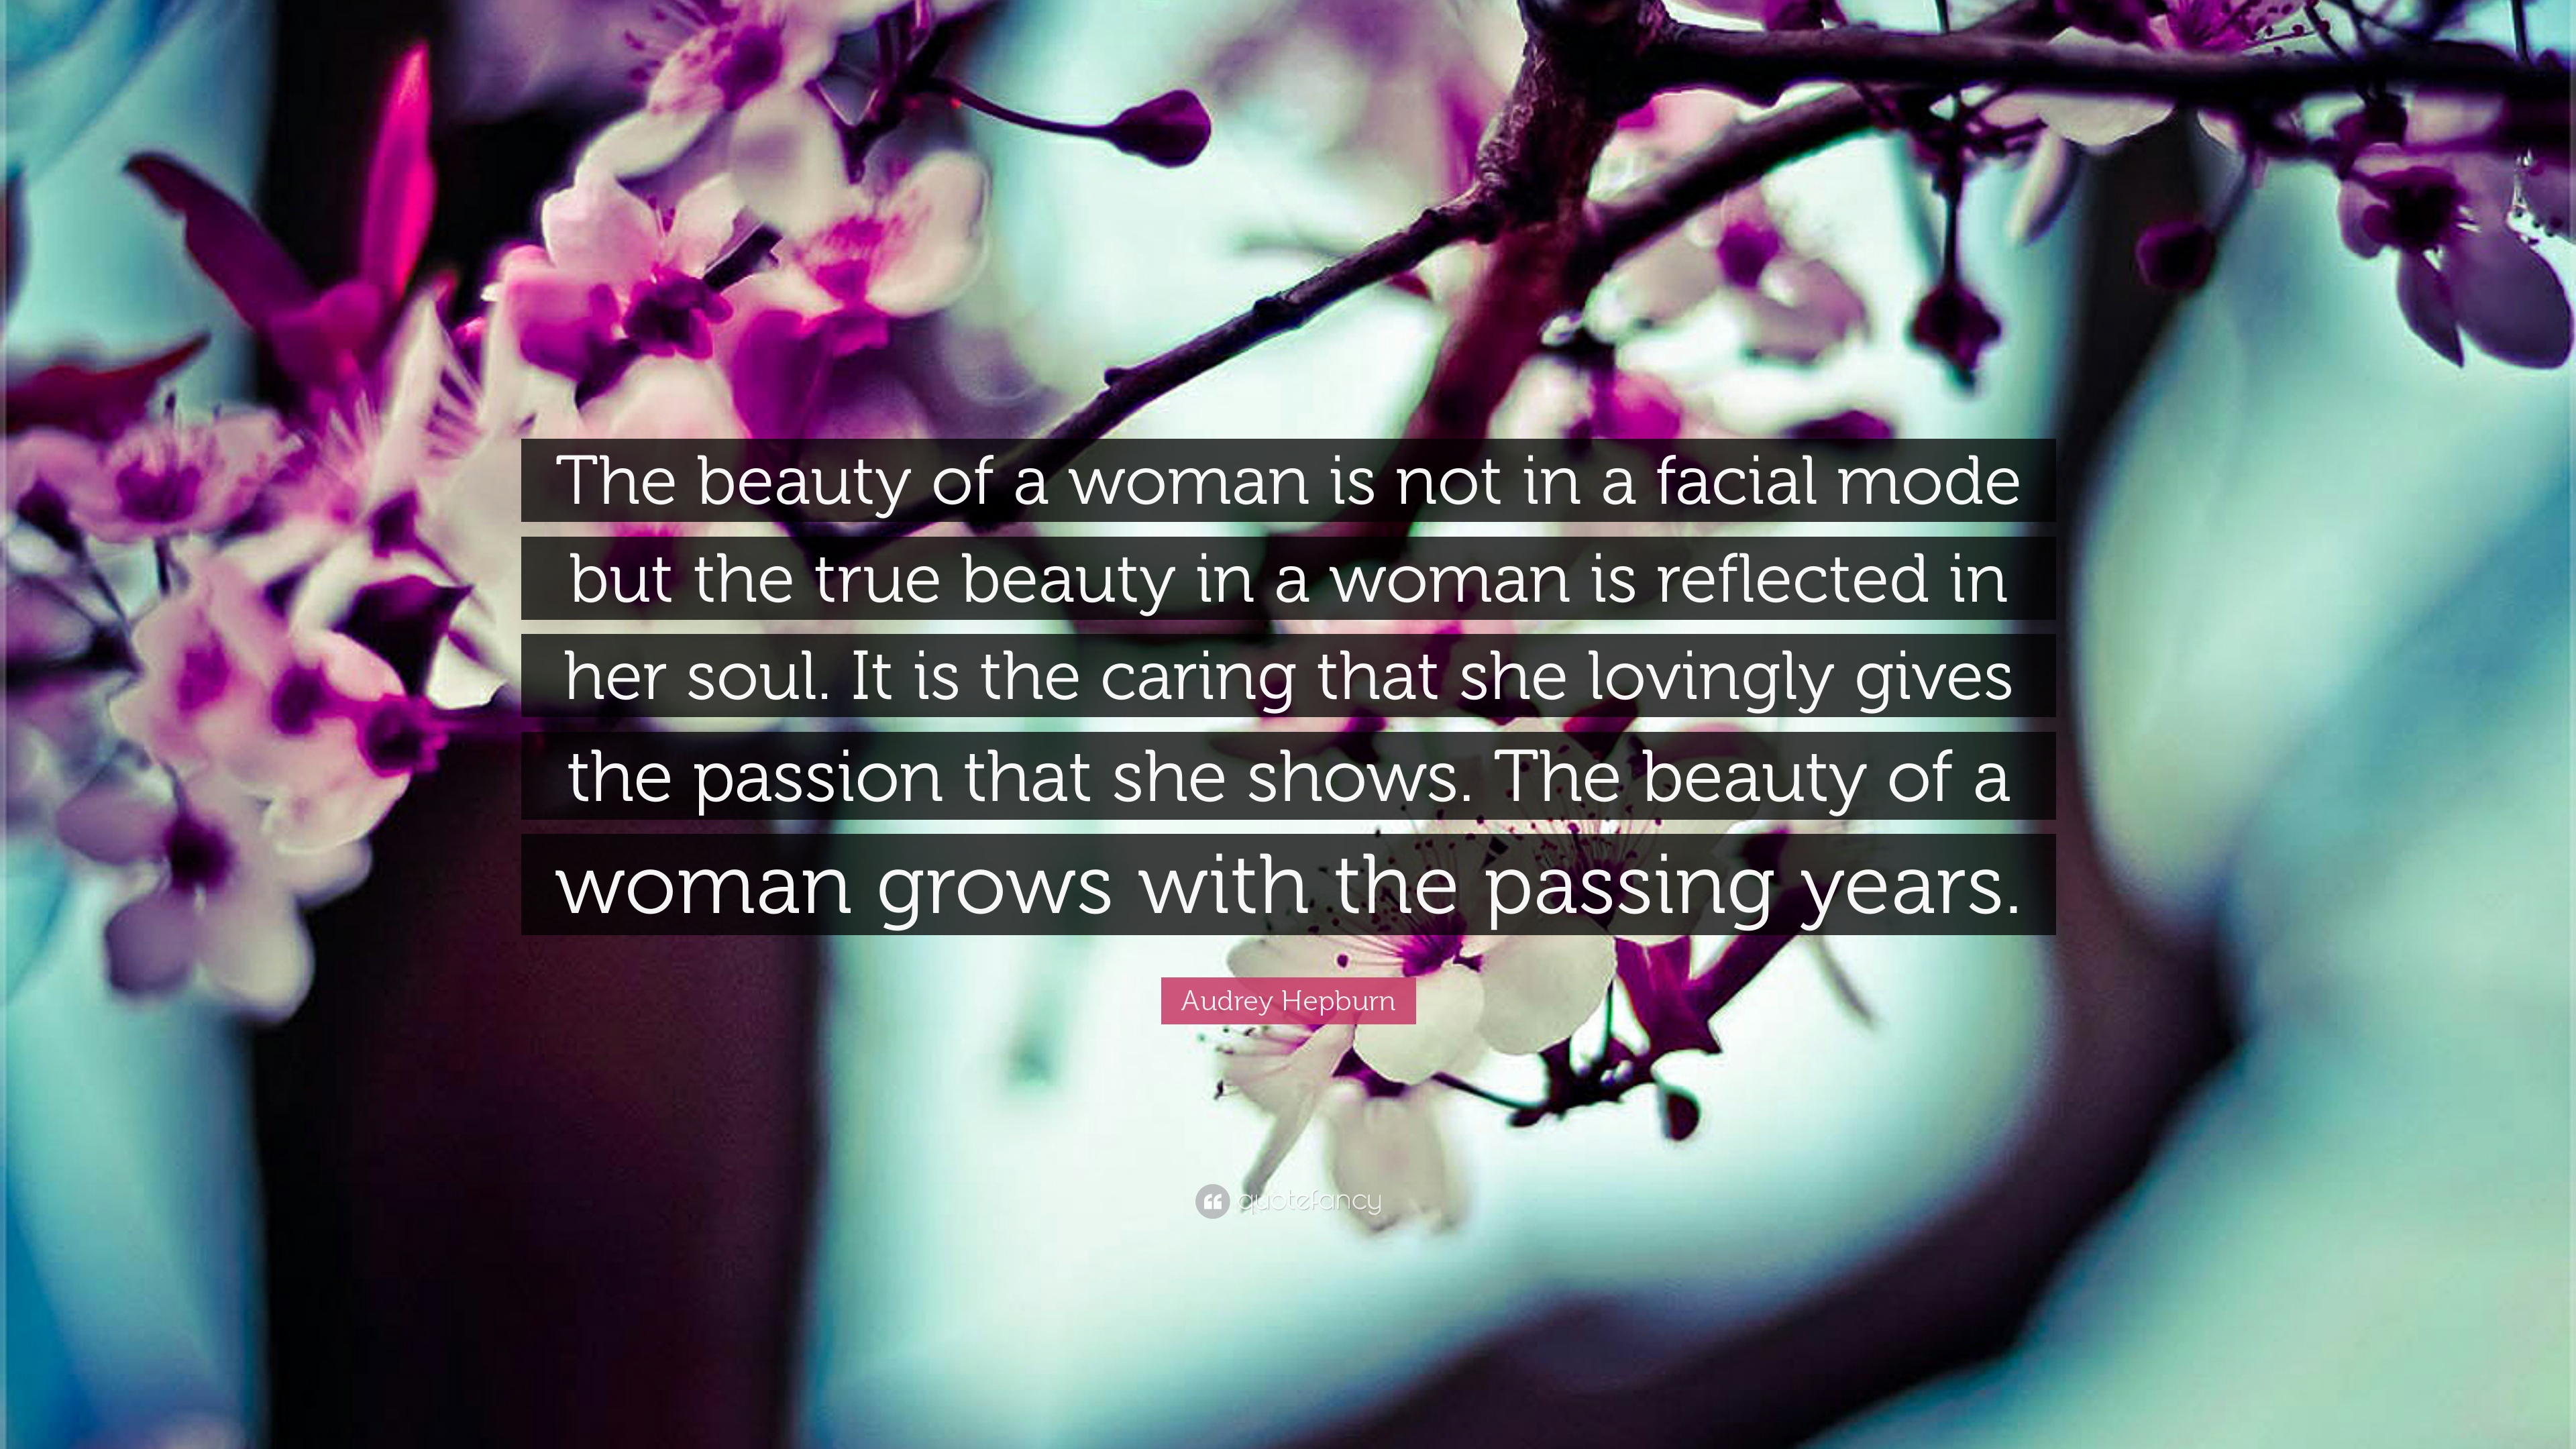 Audrey hepburn quote the beauty of a woman is not in a facial mode audrey hepburn quote the beauty of a woman is not in a facial mode izmirmasajfo